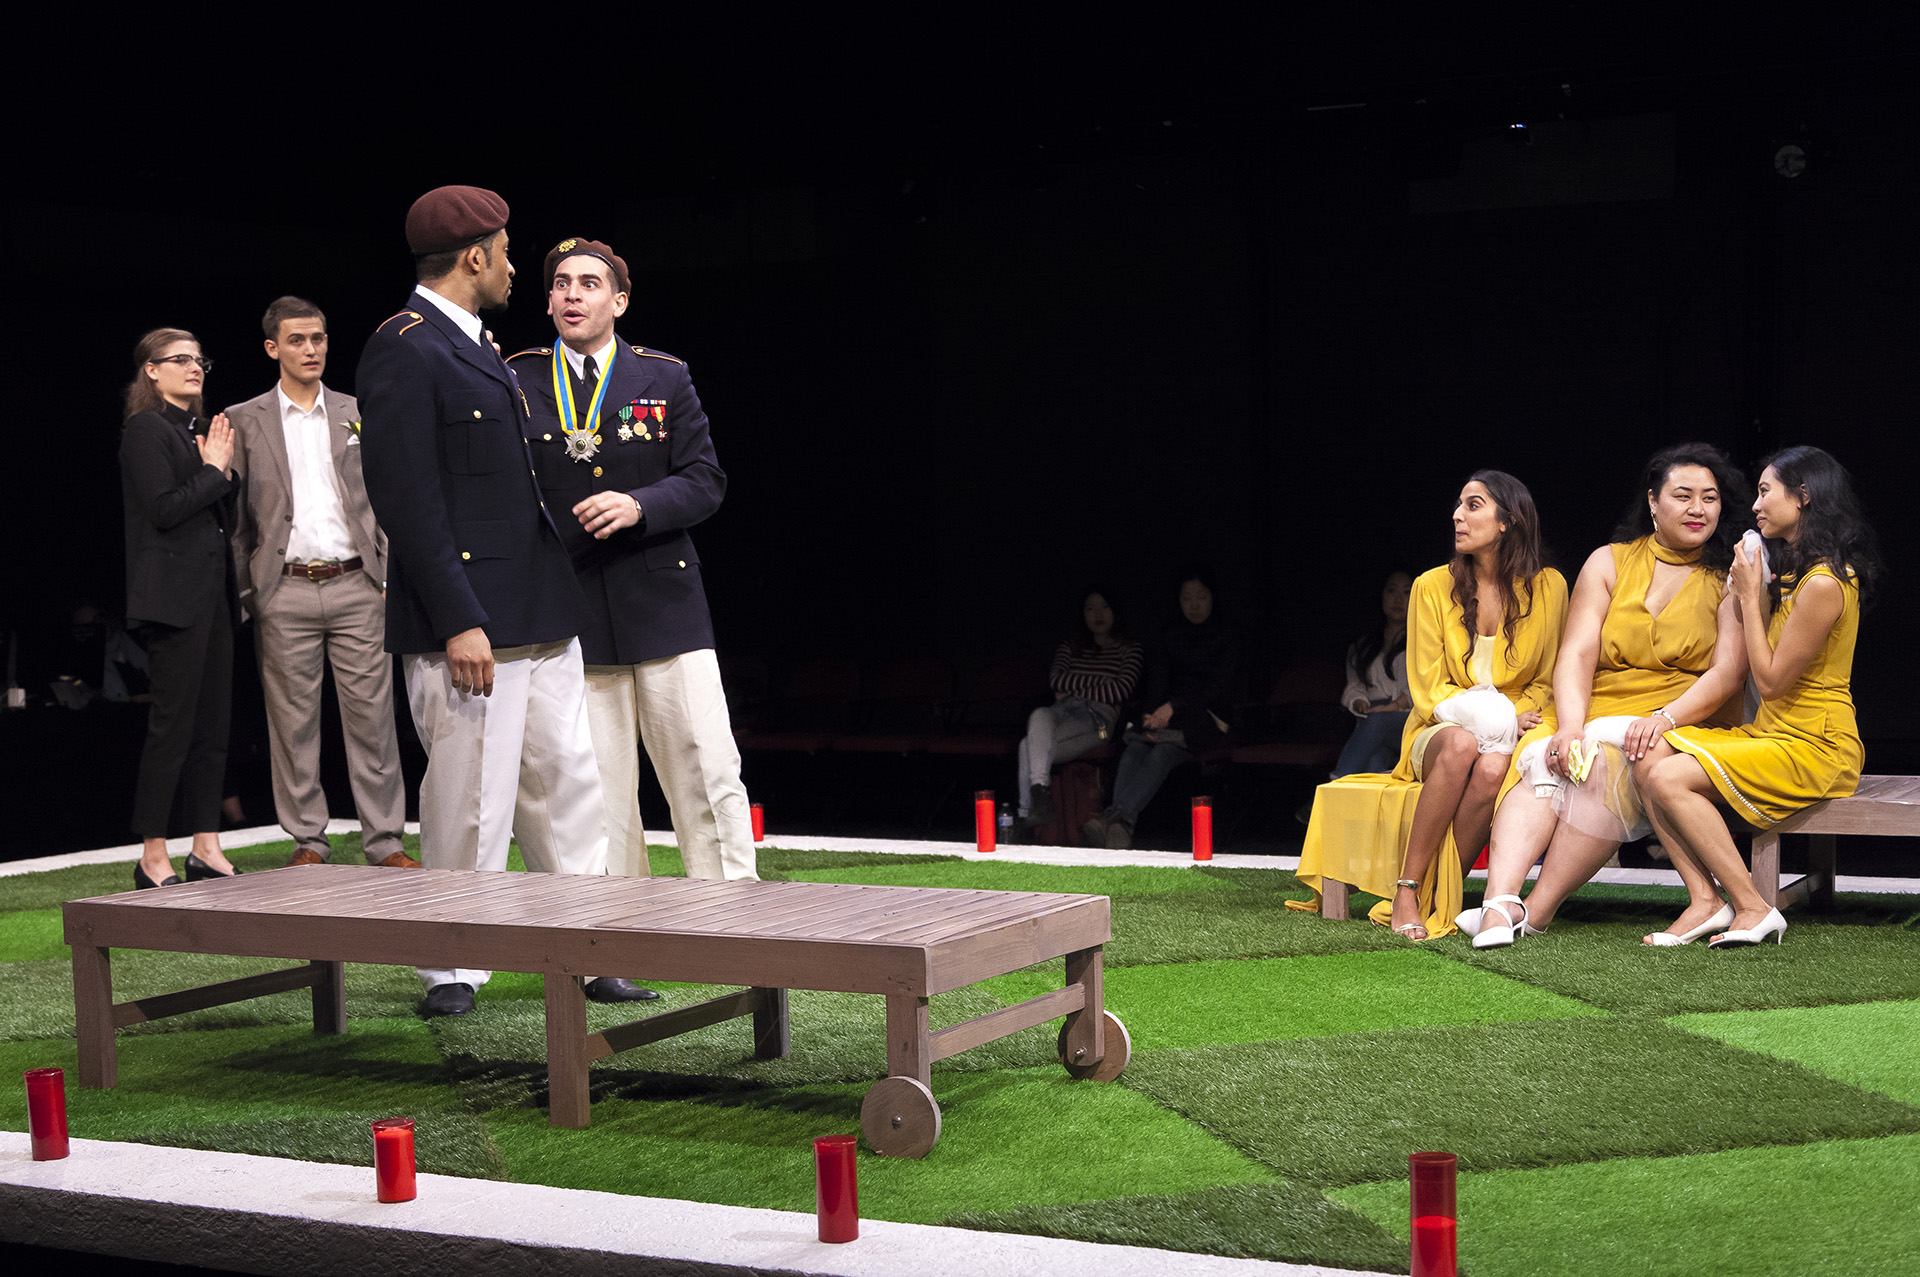 MUCH ADO ABOUT NOTHING by William Shakespeare, directed by Jecamiah M. Ybañez ('19), stage management by Samantha Tirrell ('20), Yale School of Drama, 2018. Photo by Brittany Bland ('19).